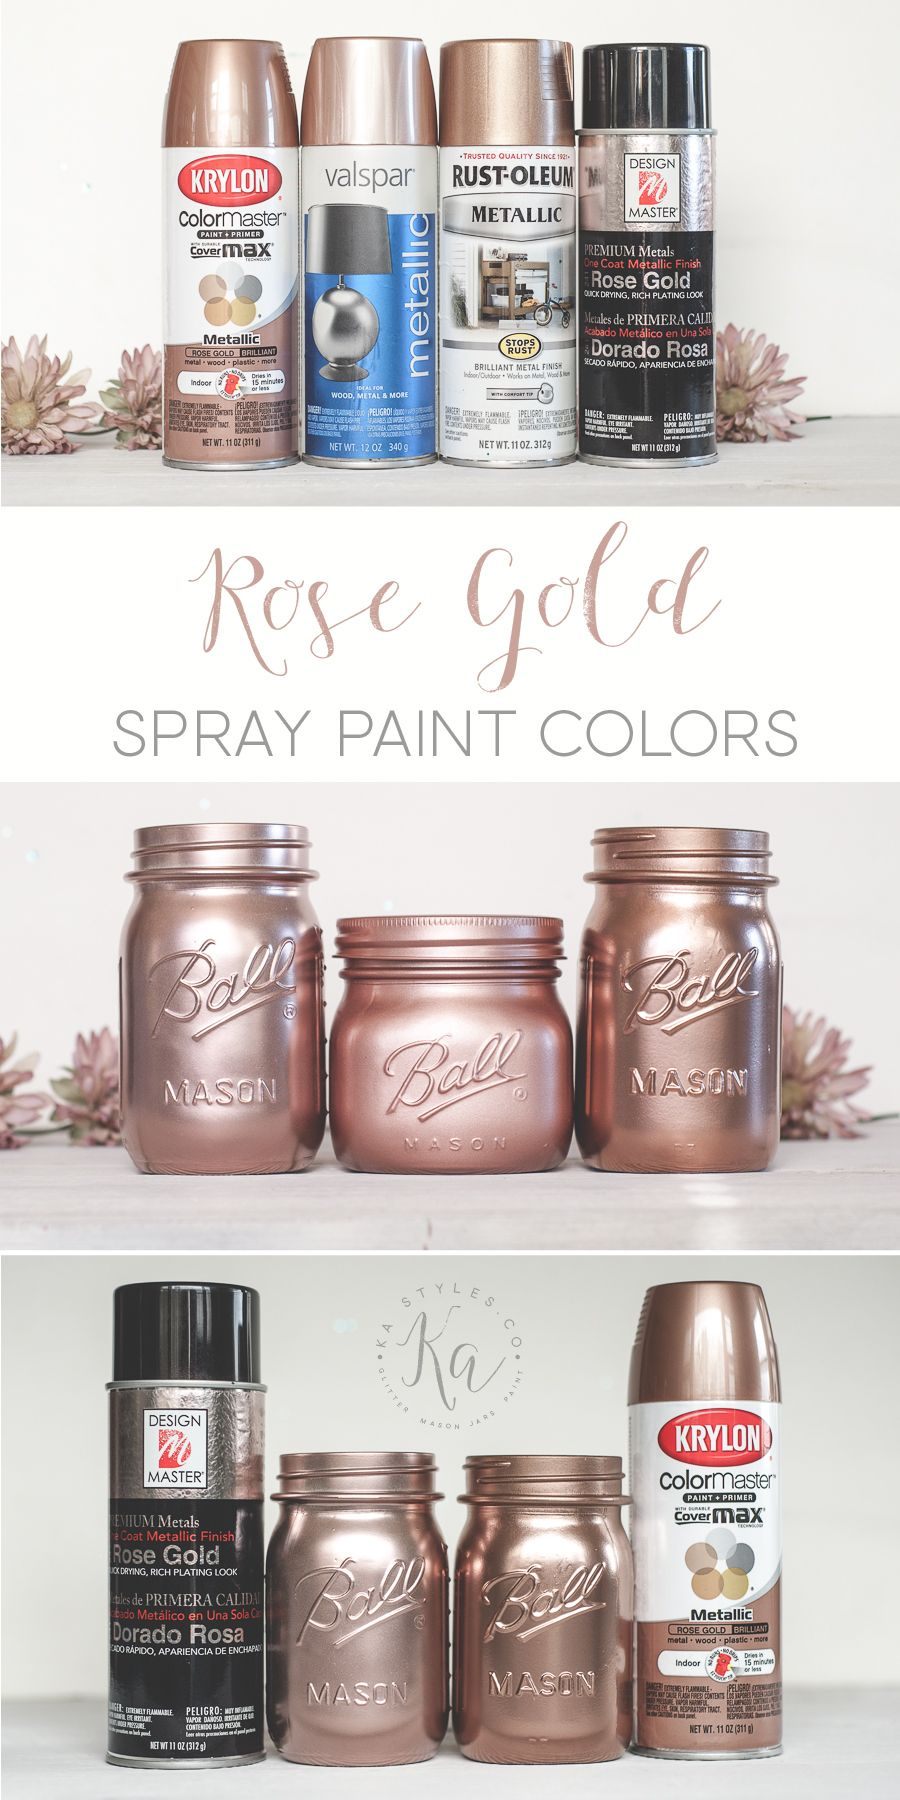 Rose gold spray paint deko dekoration und selber machen for Dekoration rosegold